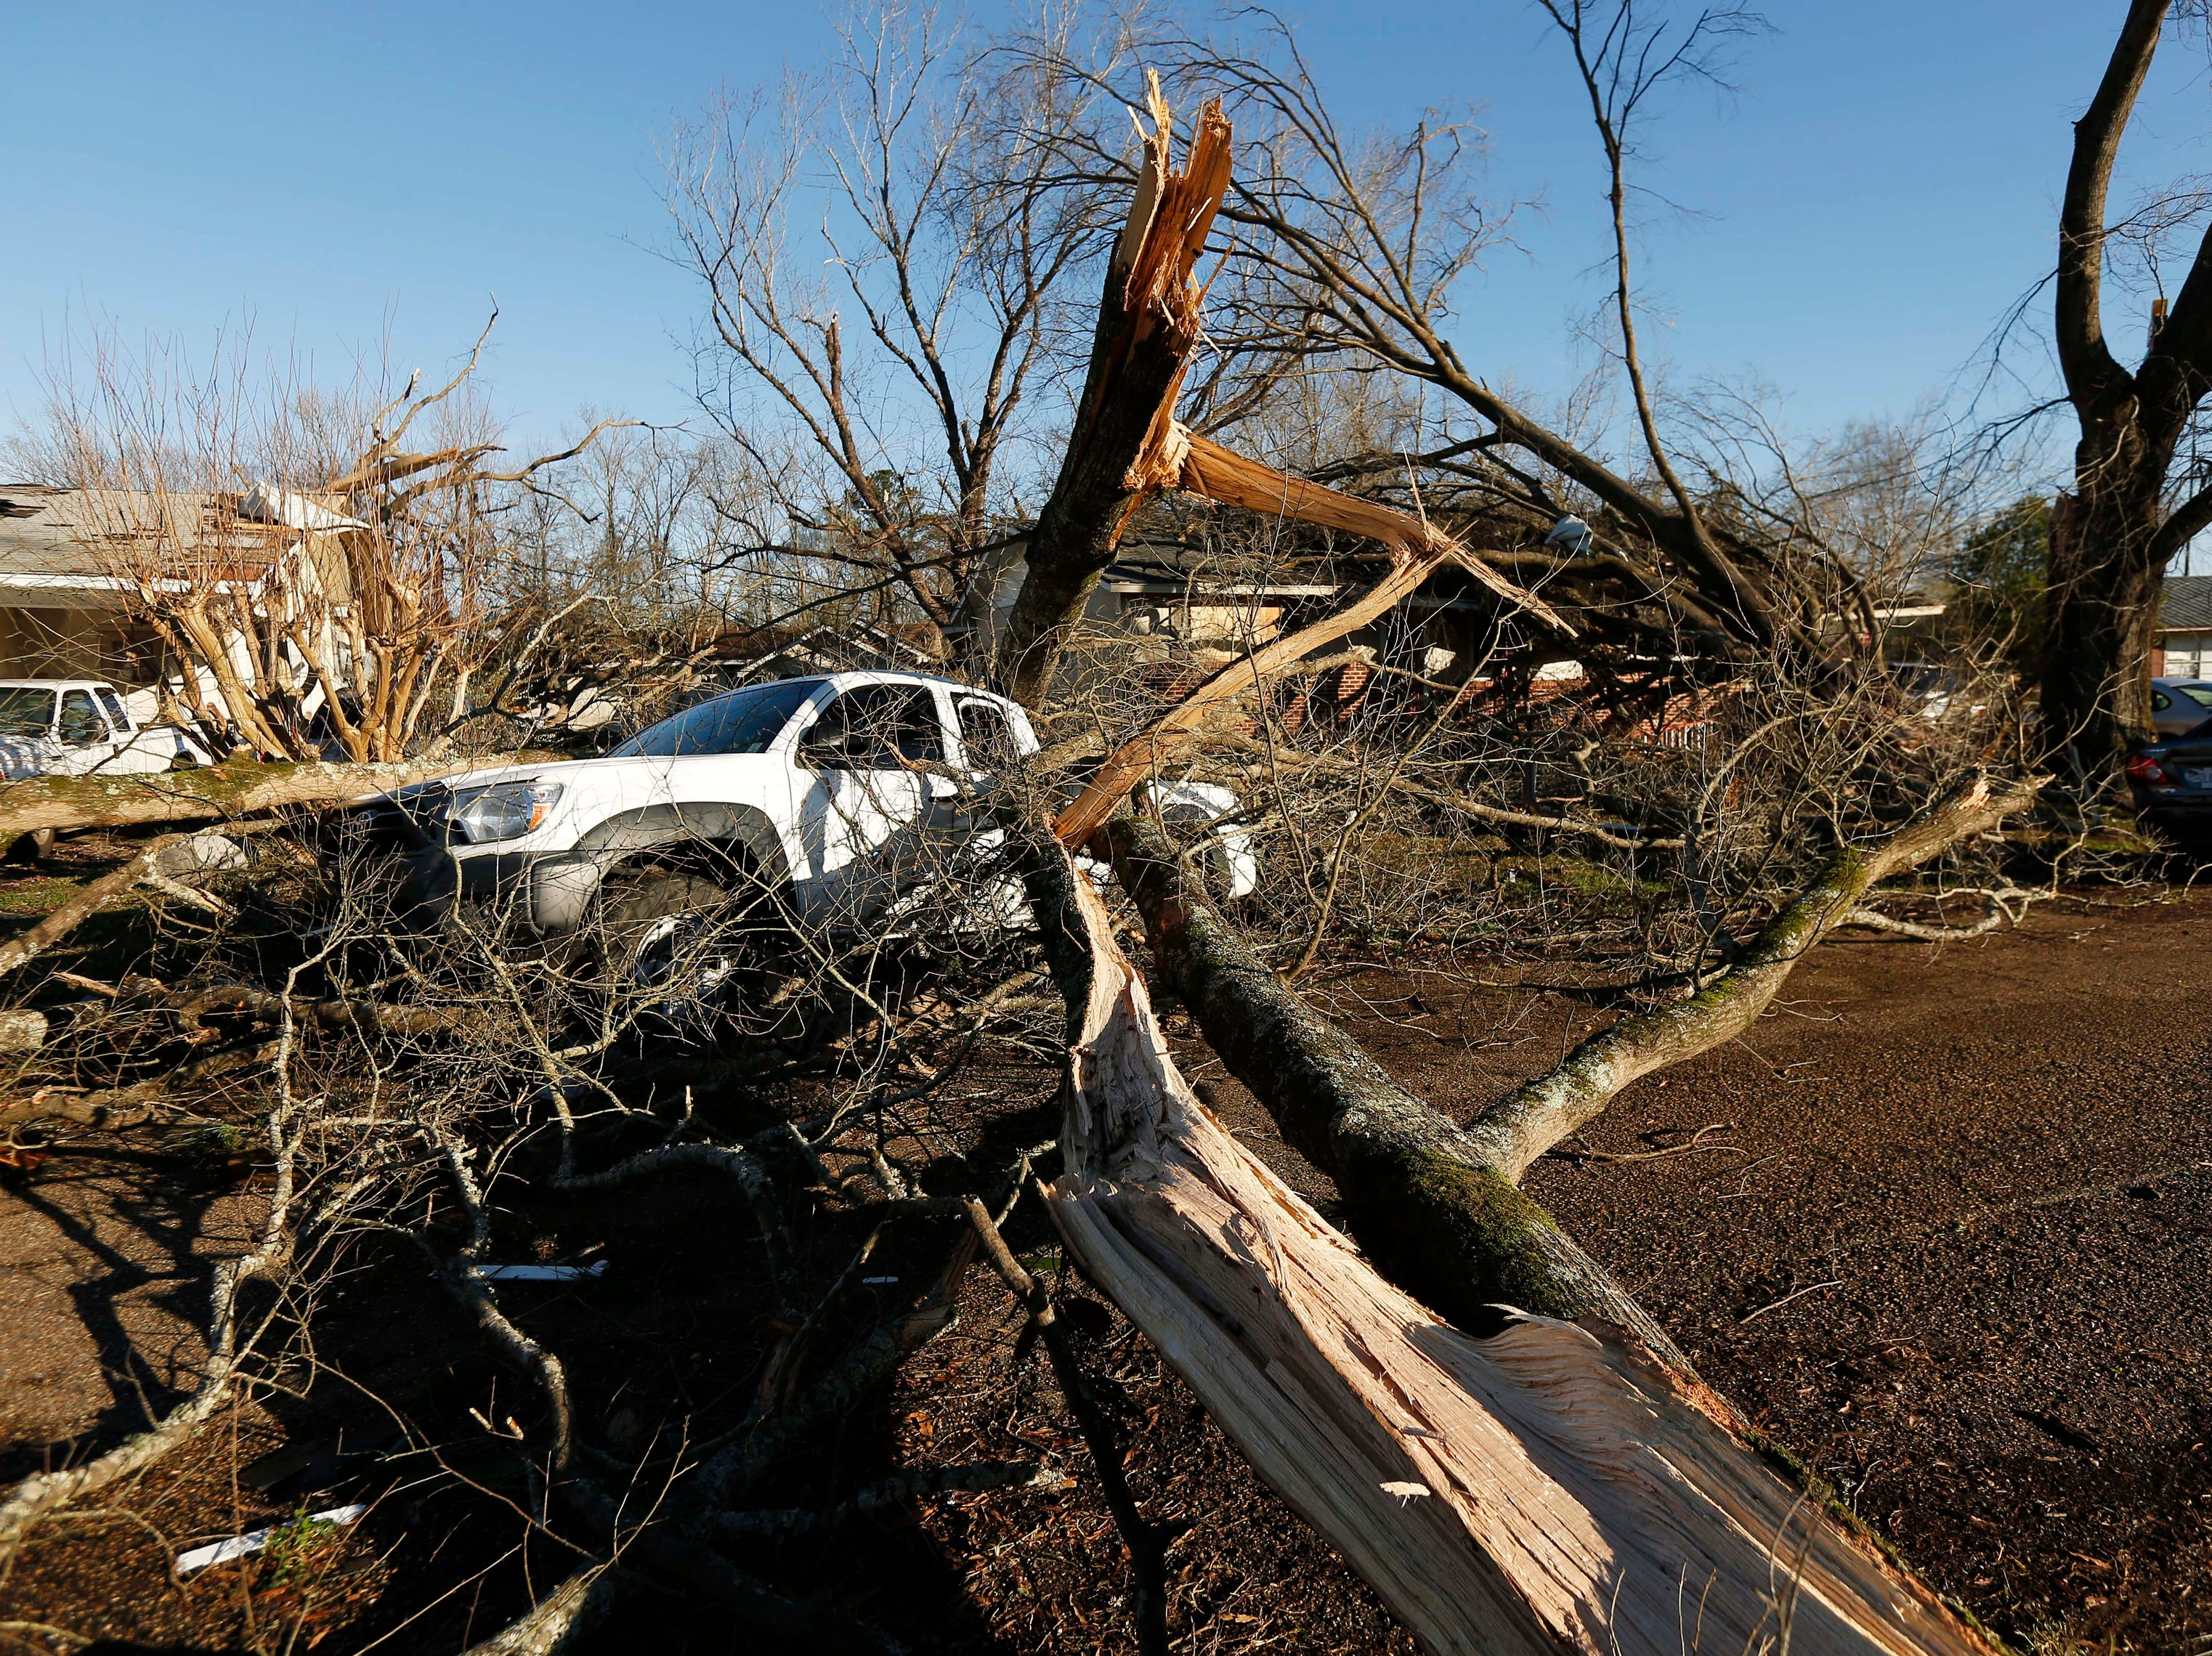 Tornado strewn debris and fallen trees in this Columbus, Miss., neighborhood, Sunday morning, Feb. 24, 2019. At least one person was killed among the shattered businesses and wrecked homes that dotted the South as severe storms followed a weekend of drenching rains and a rising flood threat. (AP Photo/Rogelio V. Solis)